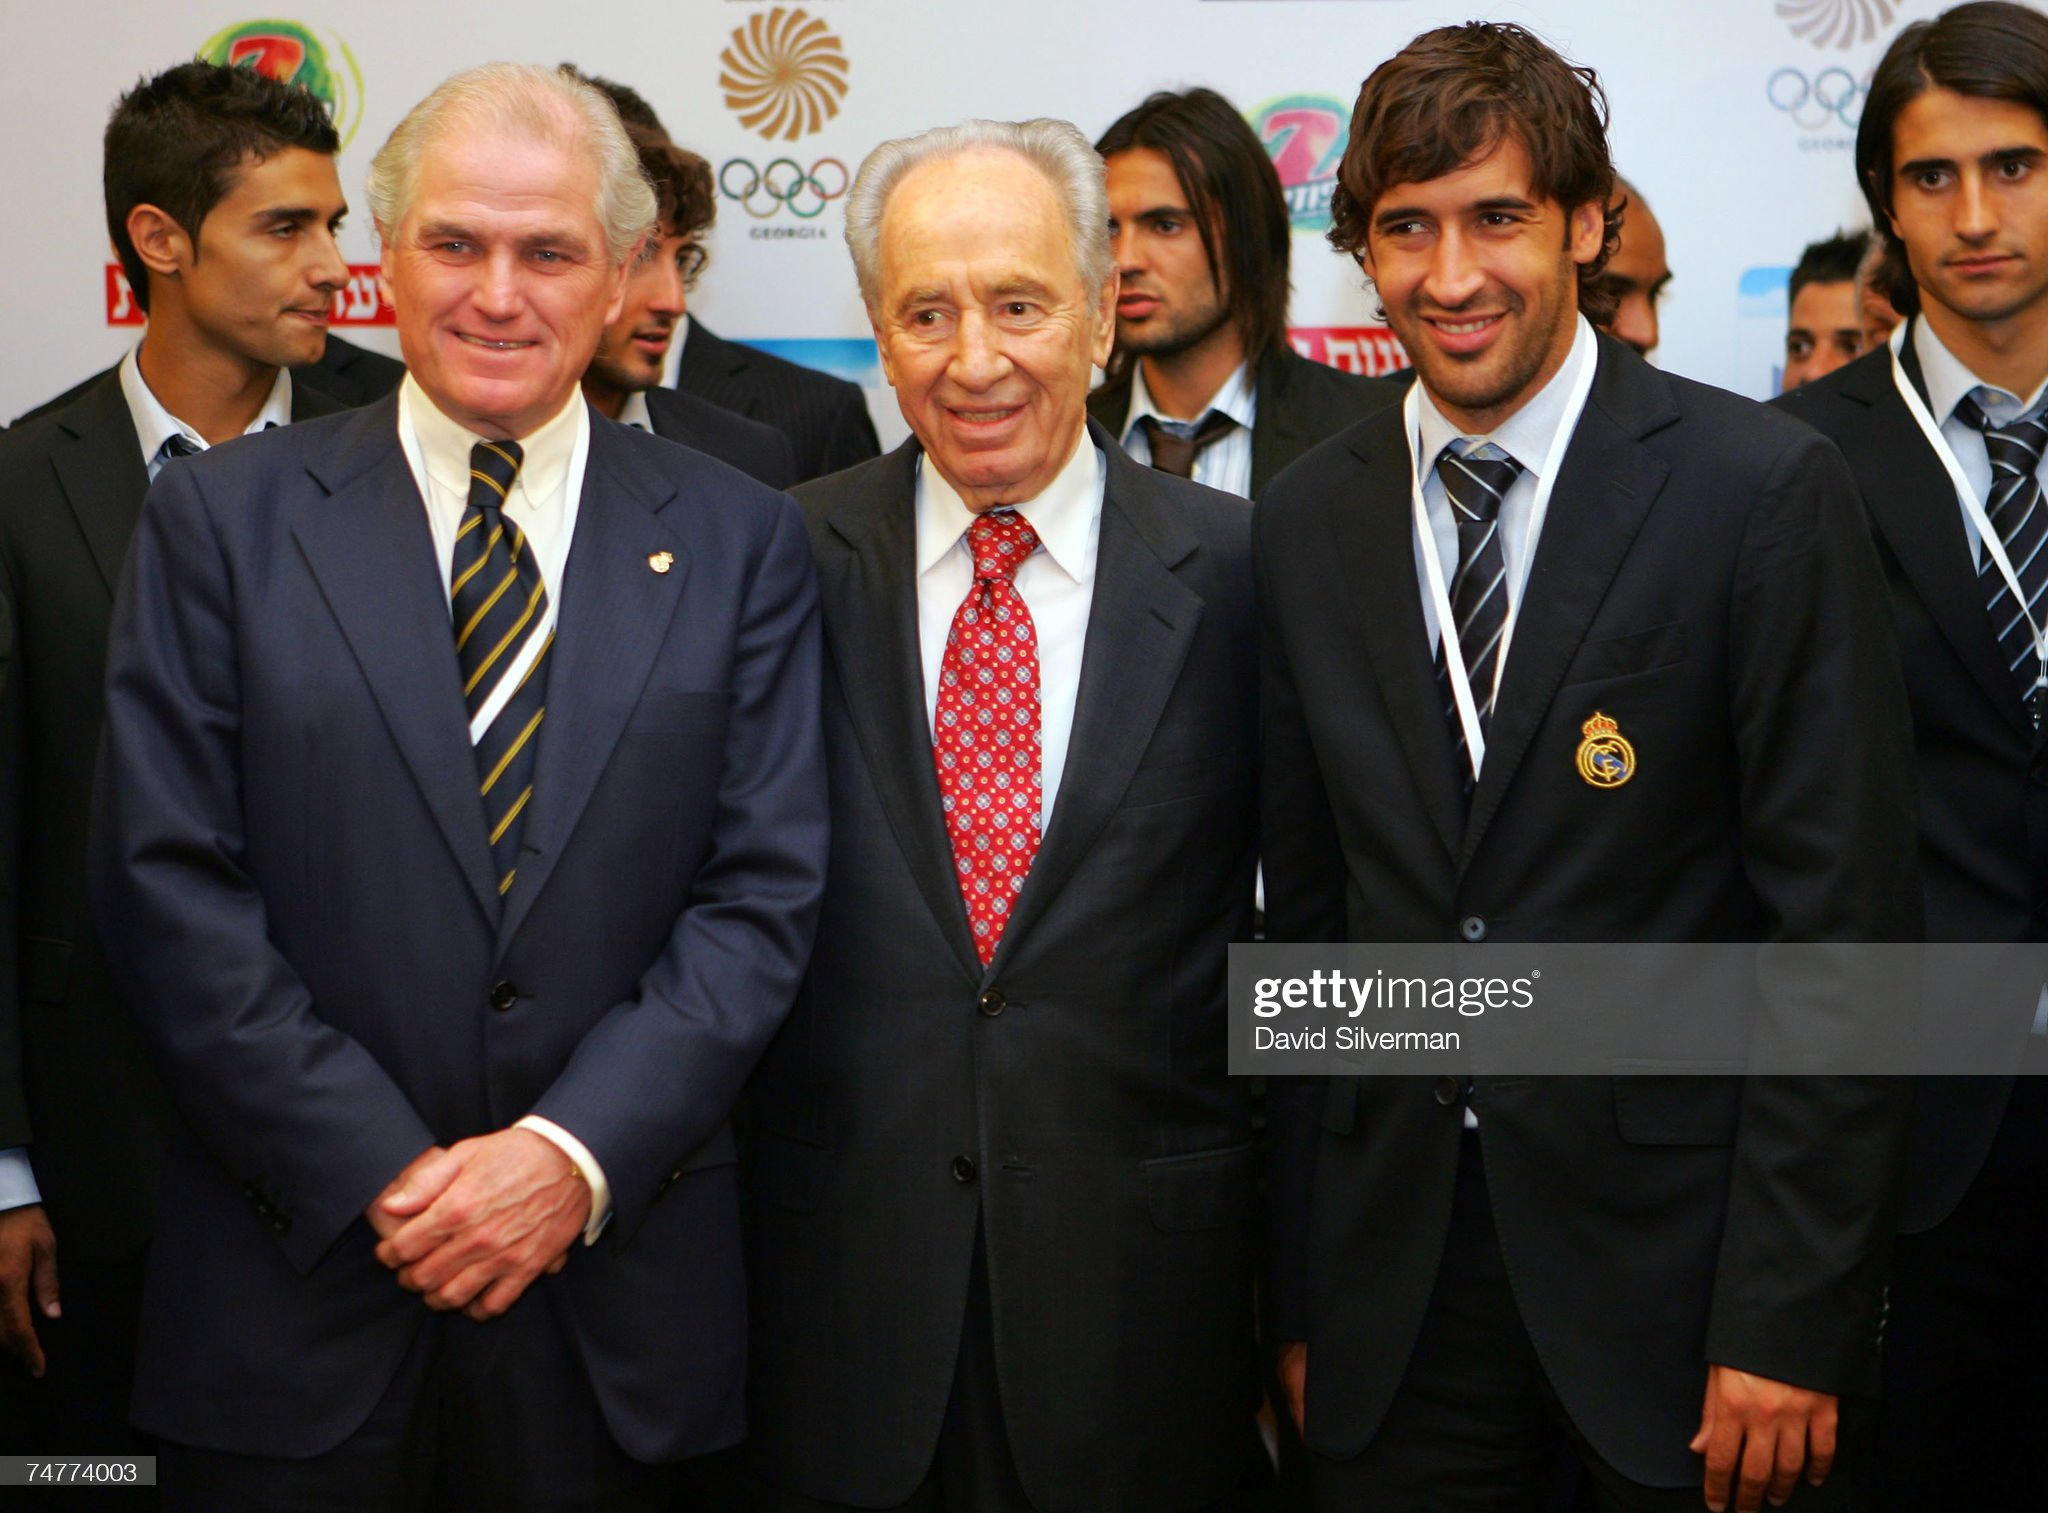 ¿Cuánto mide Ramón Calderón? Israeli-presidentelect-shimon-peres-poses-with-real-madrid-soccer-picture-id74774003?s=2048x2048